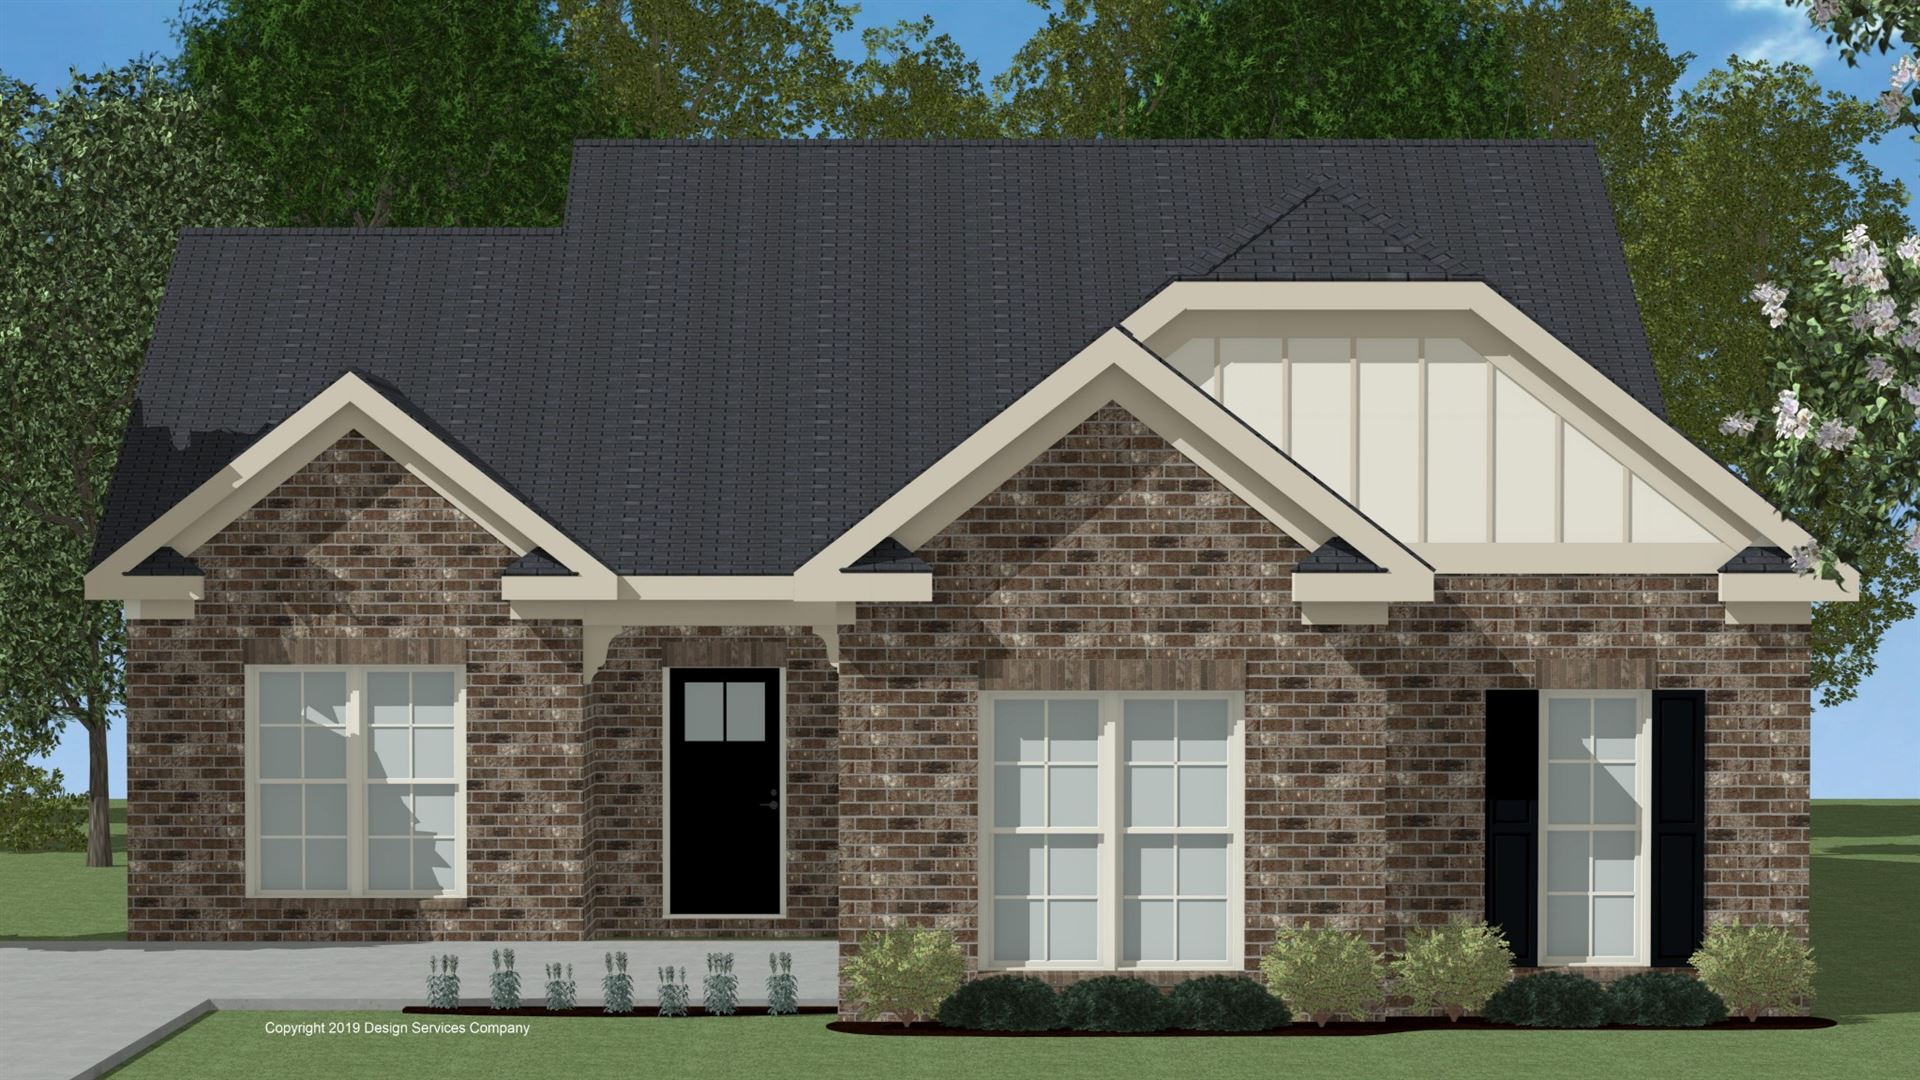 Photo of 6408 Armstrong Dr, Hermitage, TN 37076 (MLS # 2228806)